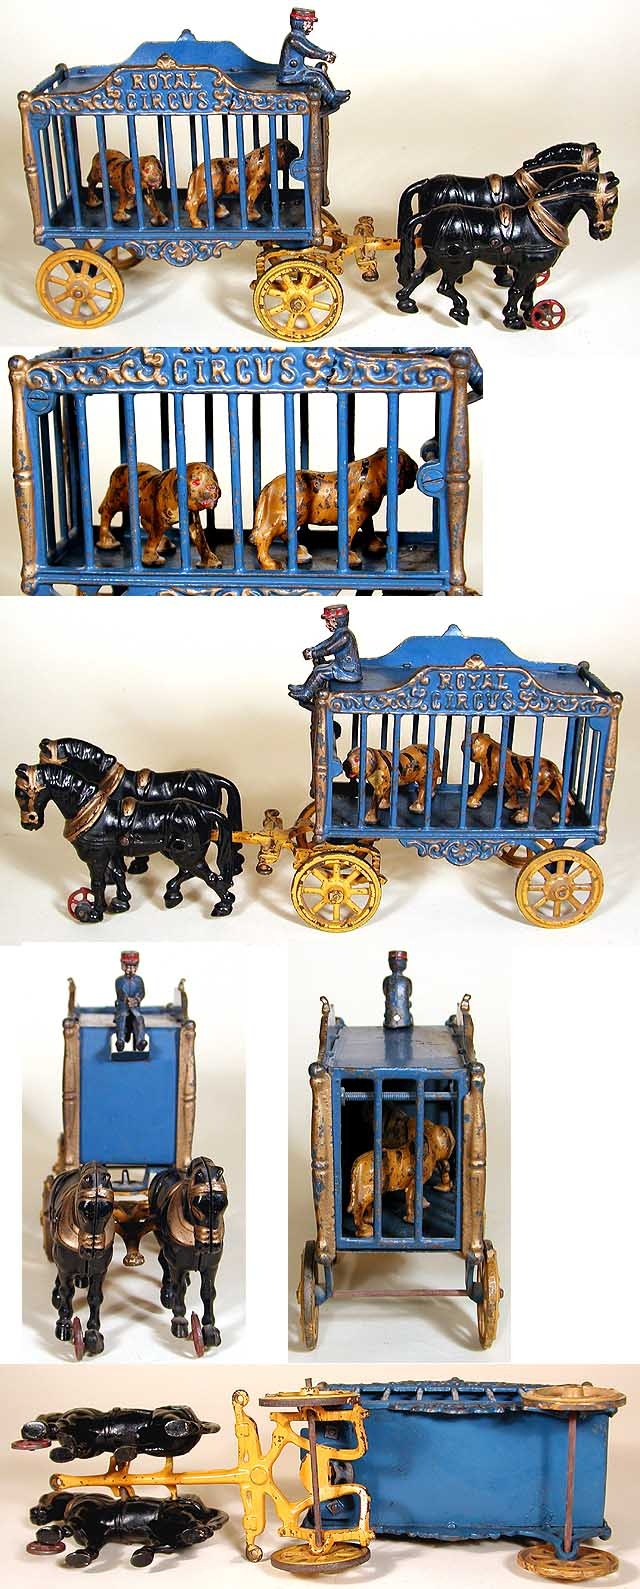 Circus cast metal toys with removeable riders, etc.